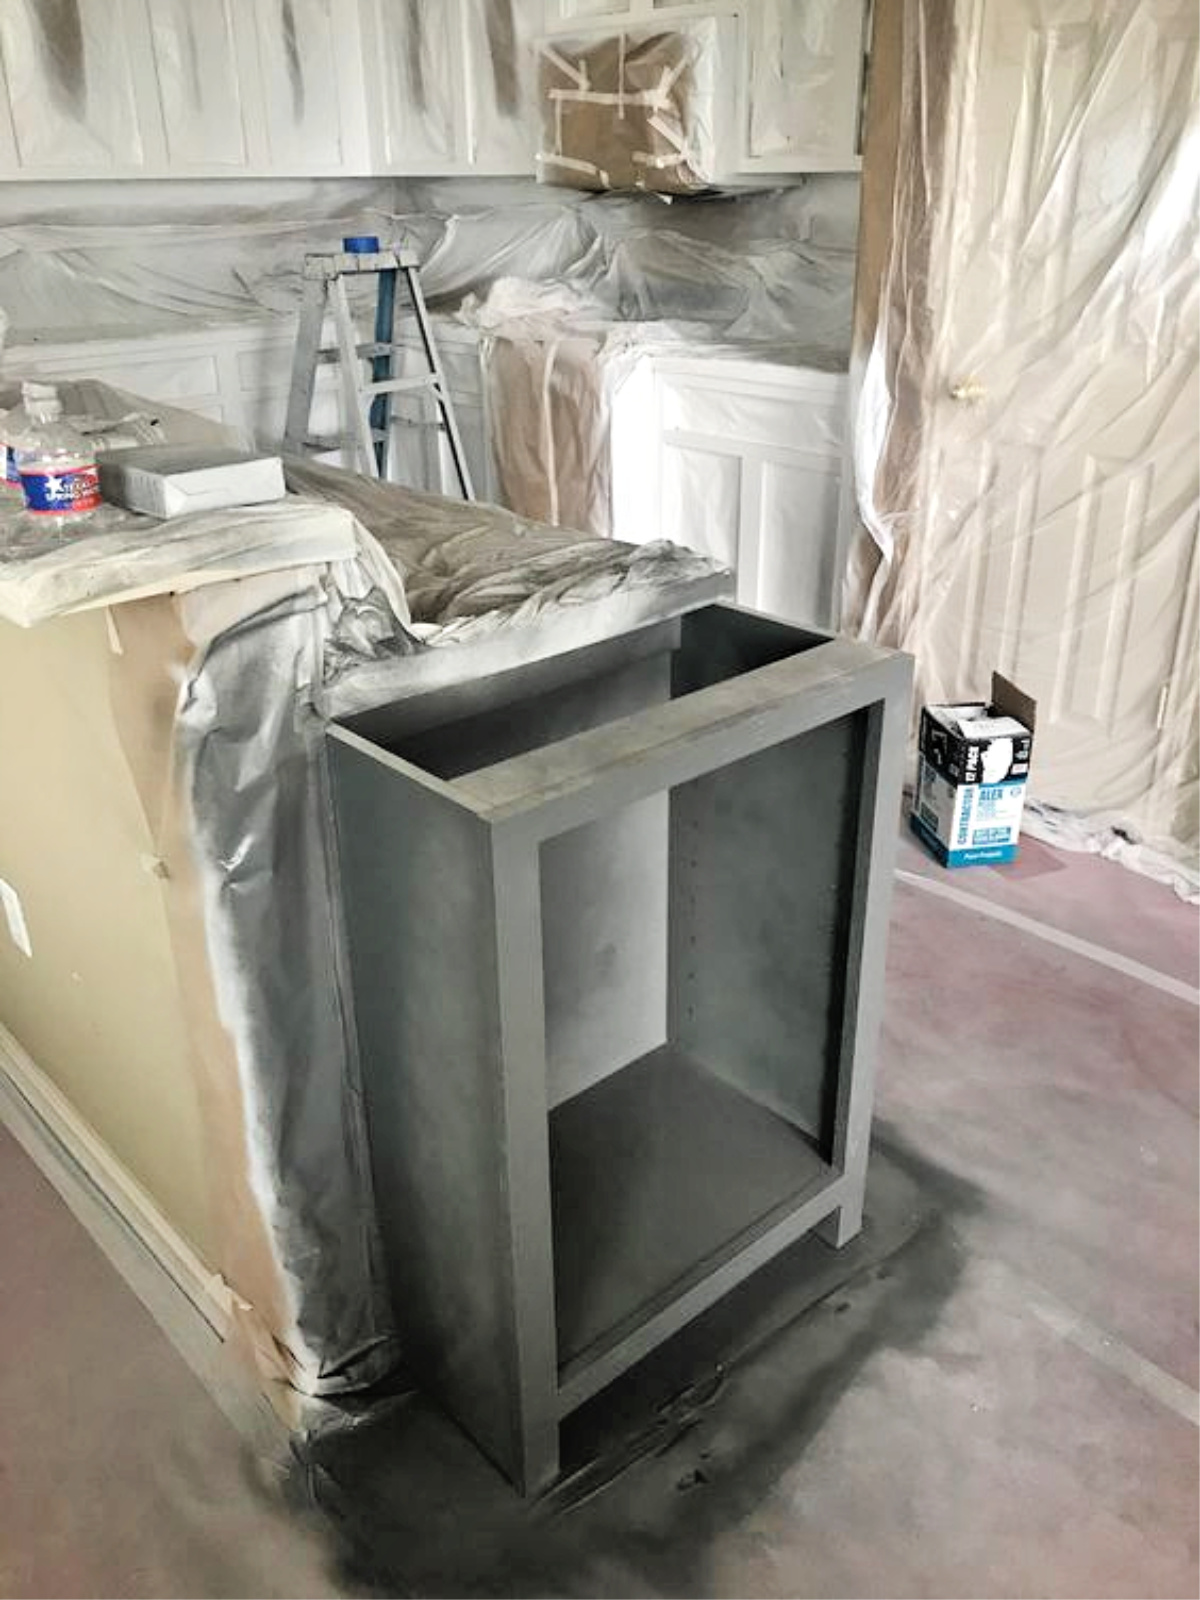 progress with painting kitchen cabinets